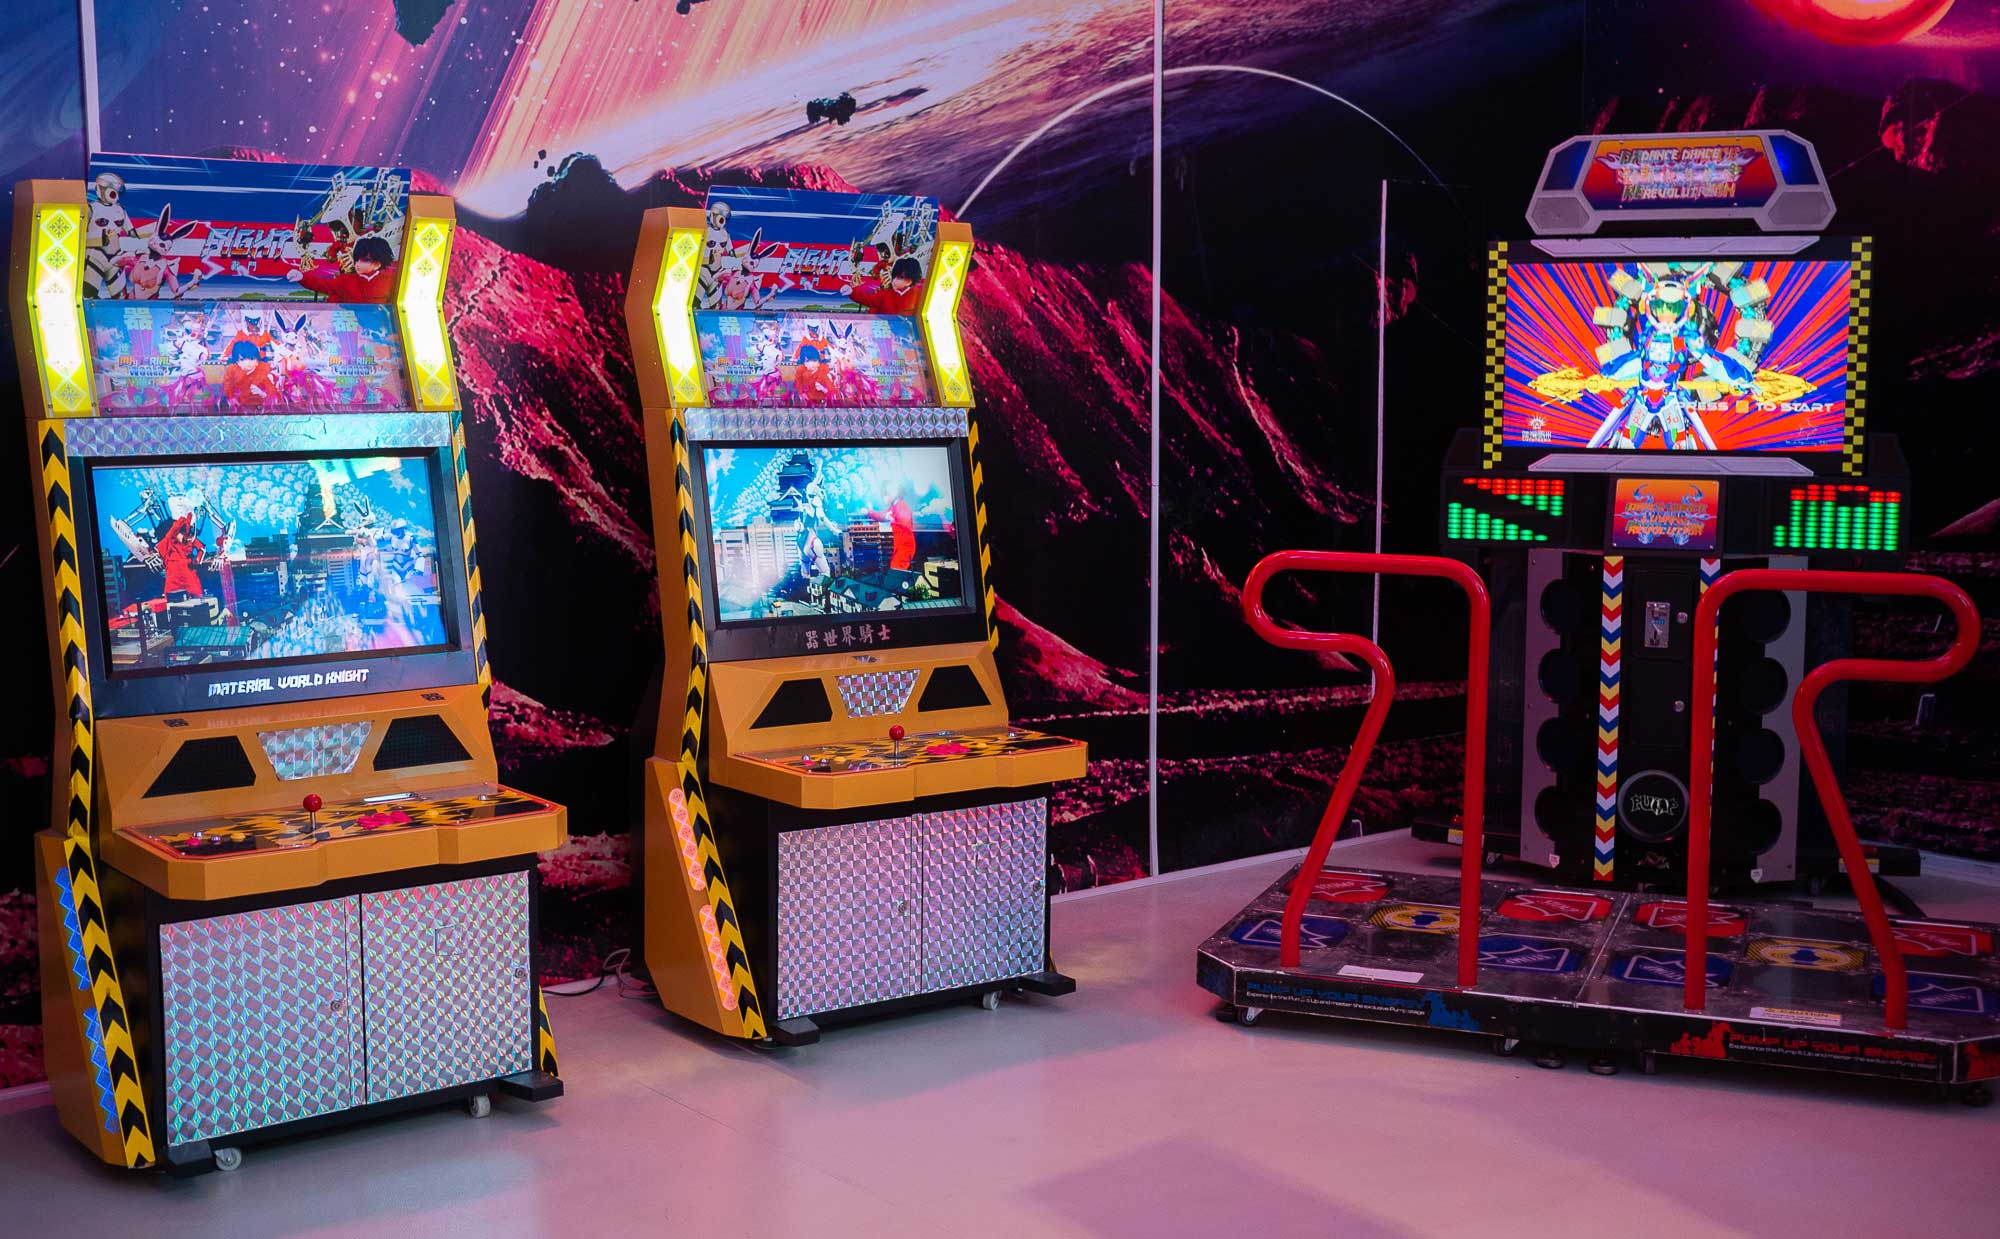 Photo of Lu Yang Dance Dance Revolution arcade machine installed at Power Station of Art